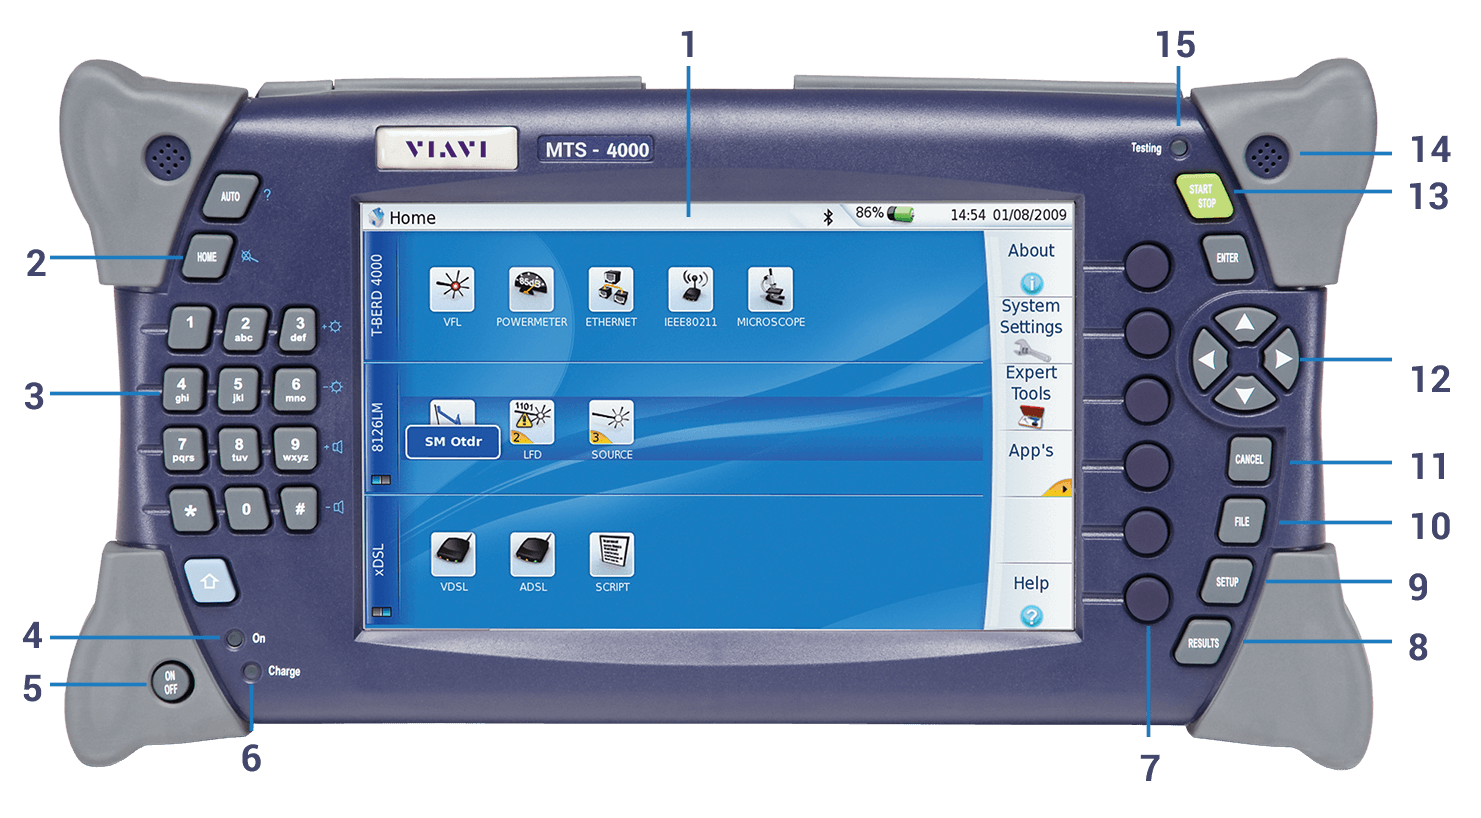 VIAVI-MTS-4000-Multiple-Services-Fiber-Optic-Test-Platform-buttons-navigation-JDSU